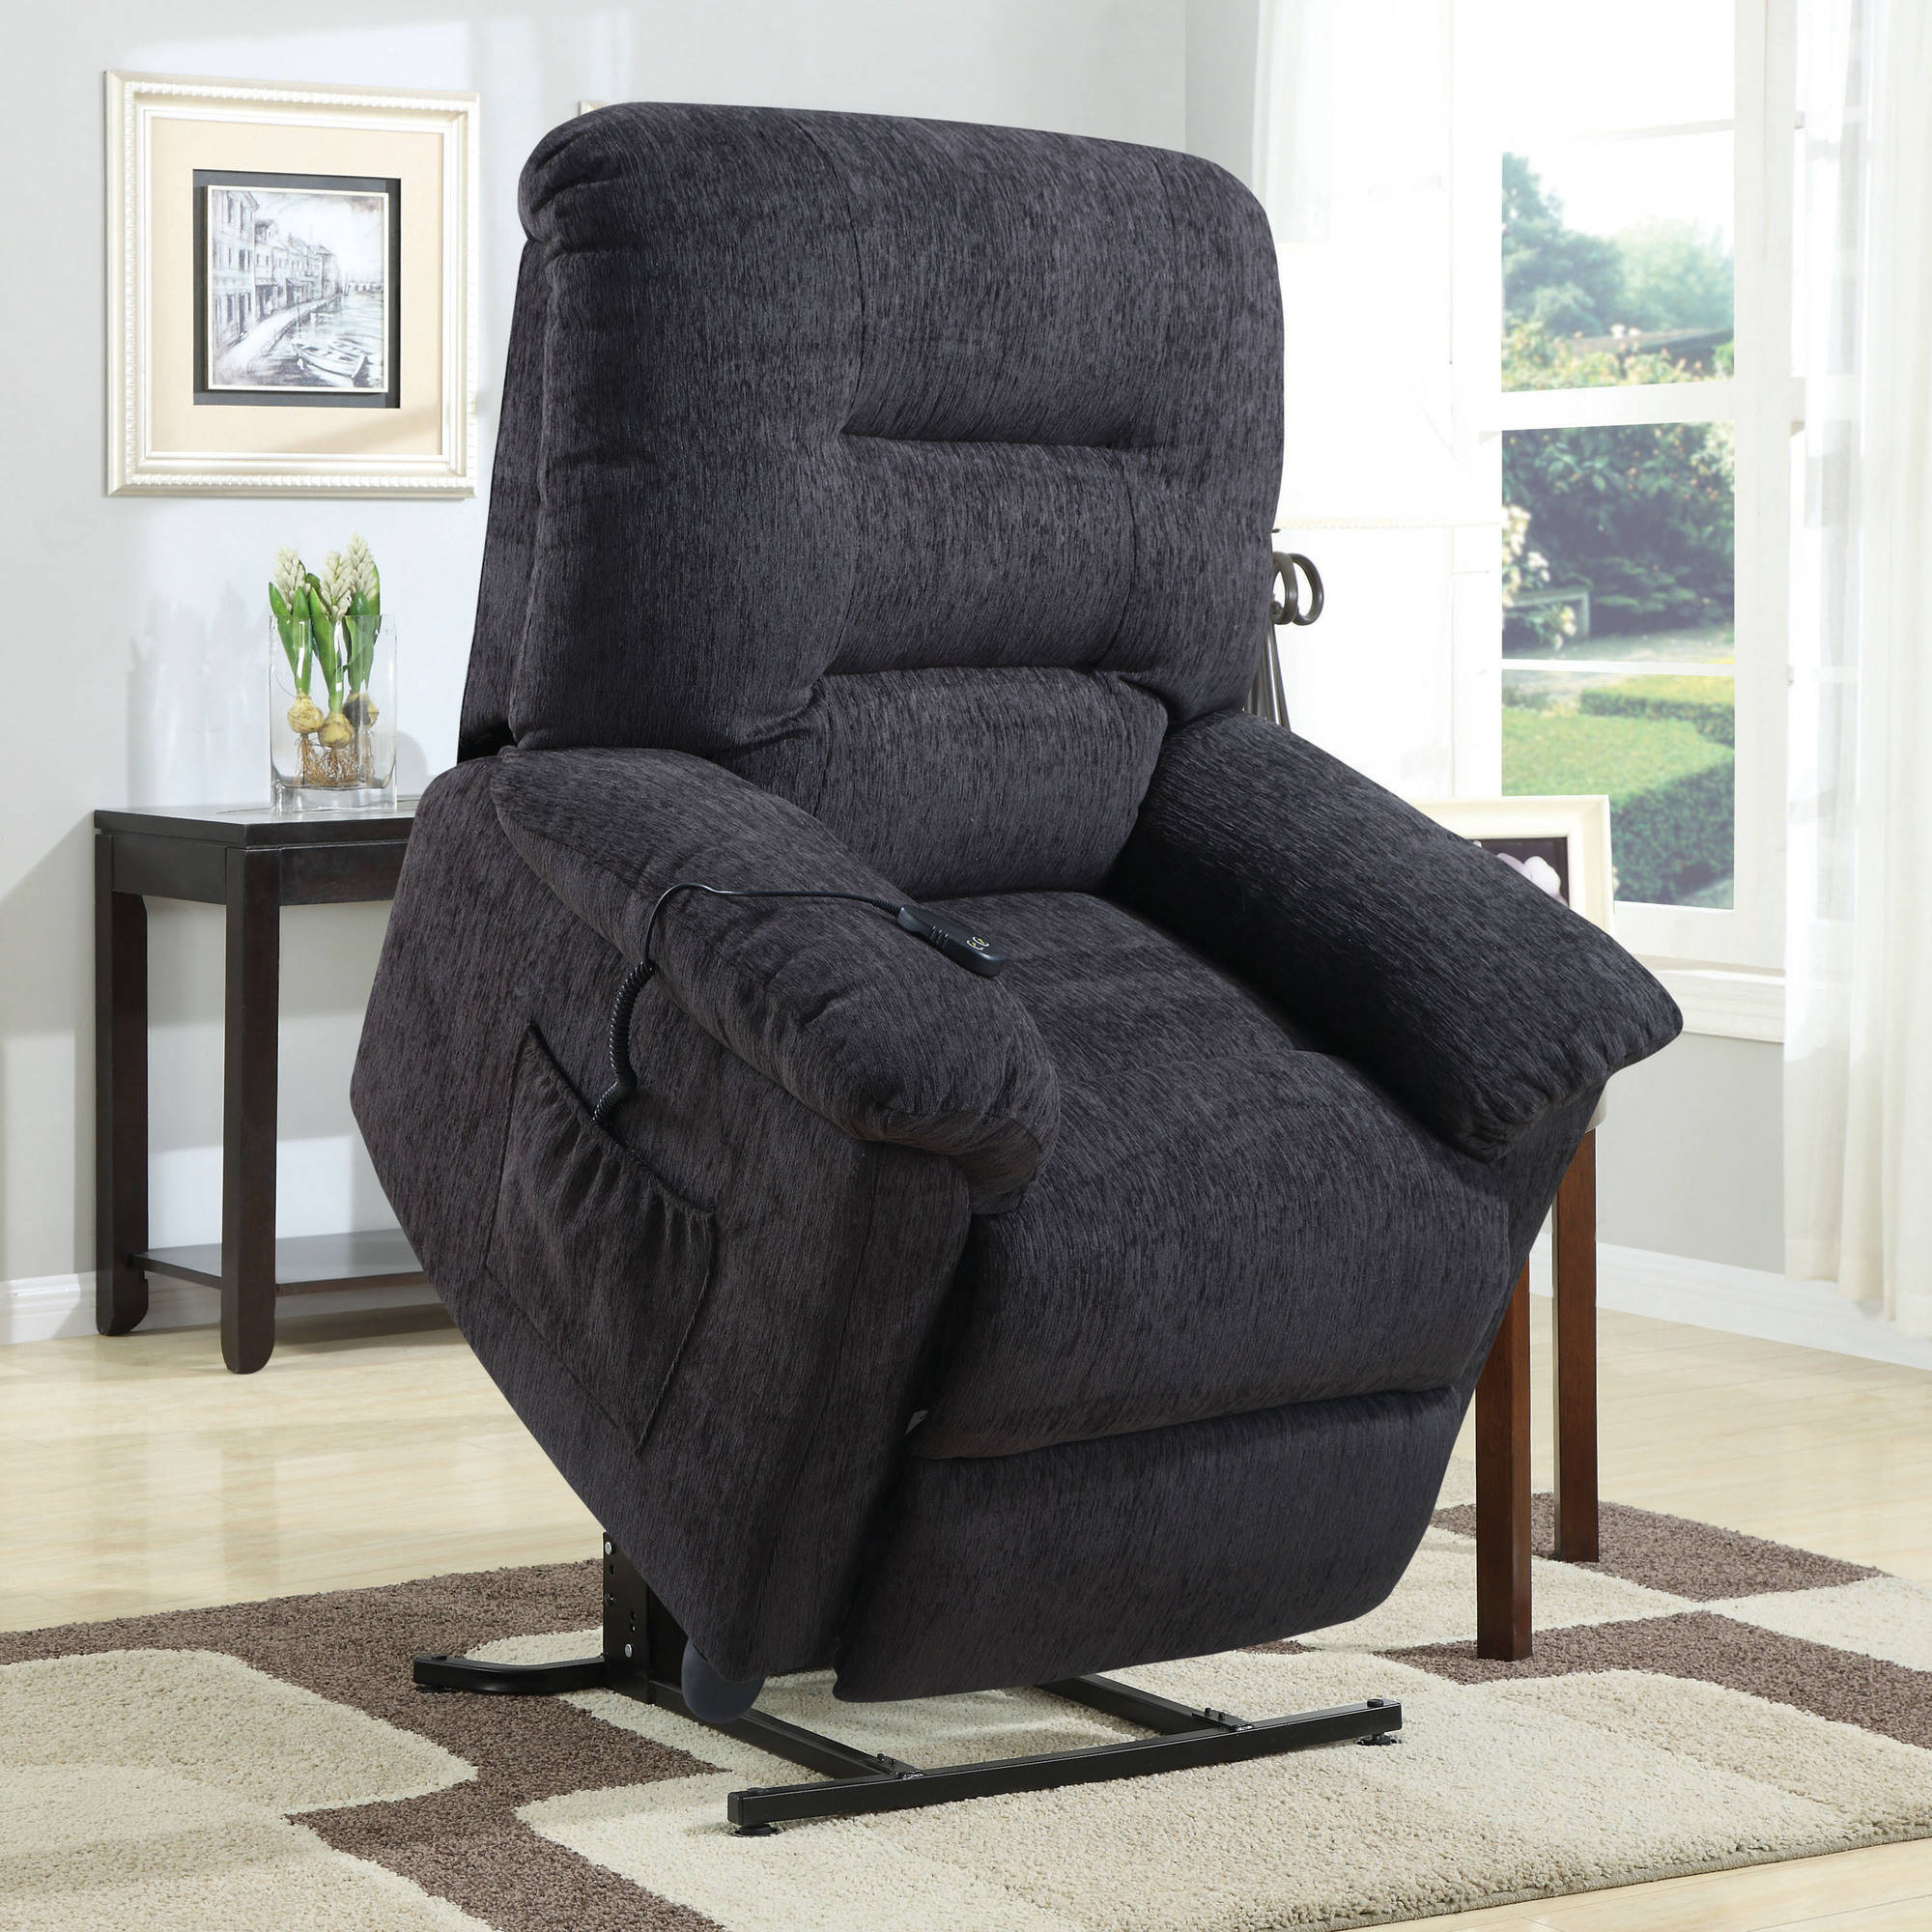 & Coaster Power Lift Recliner - Walmart.com islam-shia.org